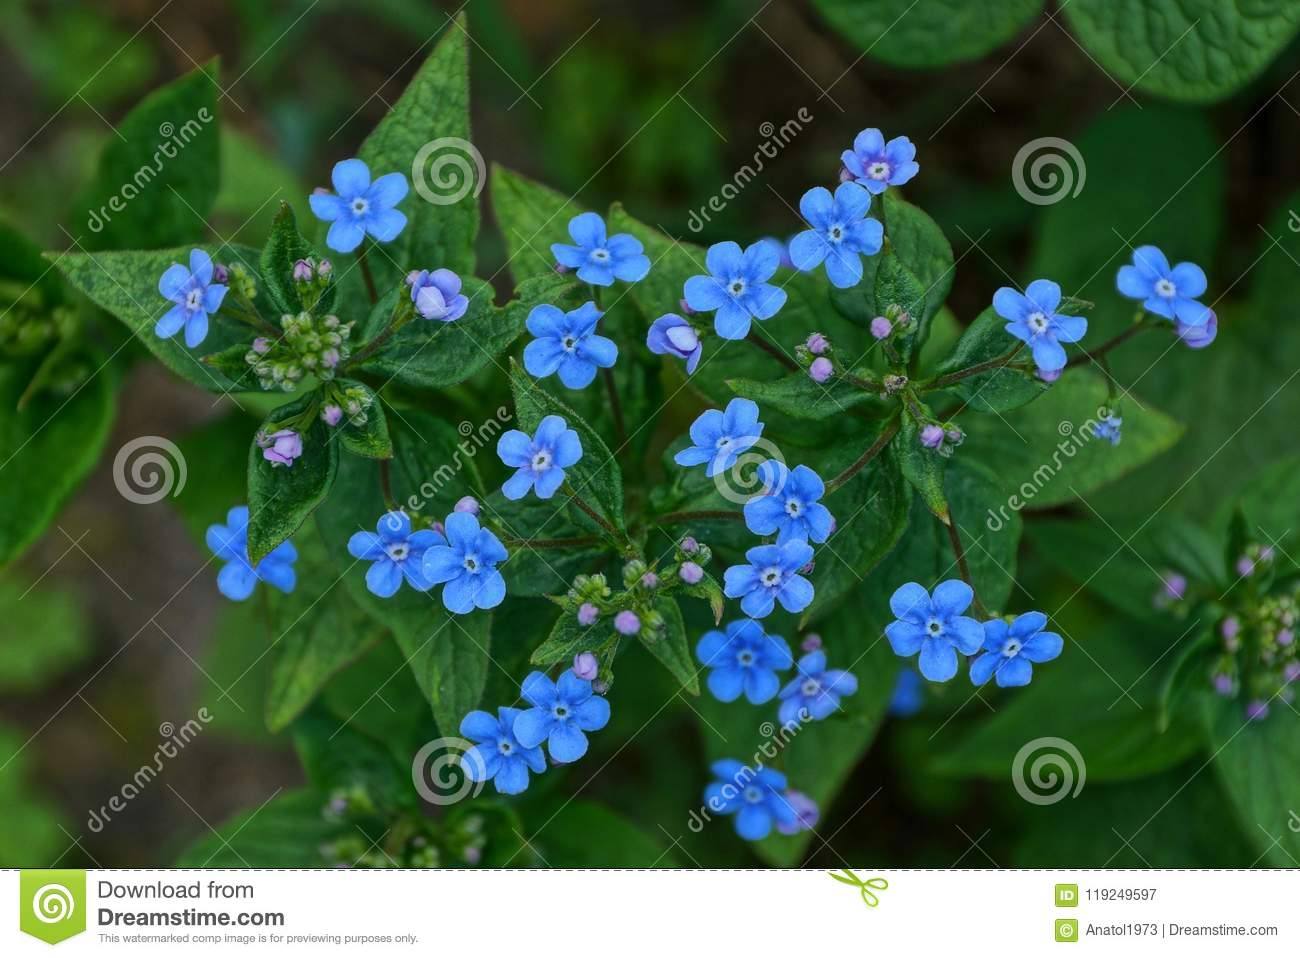 Buds of small blue flowers in green leaves in nature stock image download buds of small blue flowers in green leaves in nature stock image image of izmirmasajfo